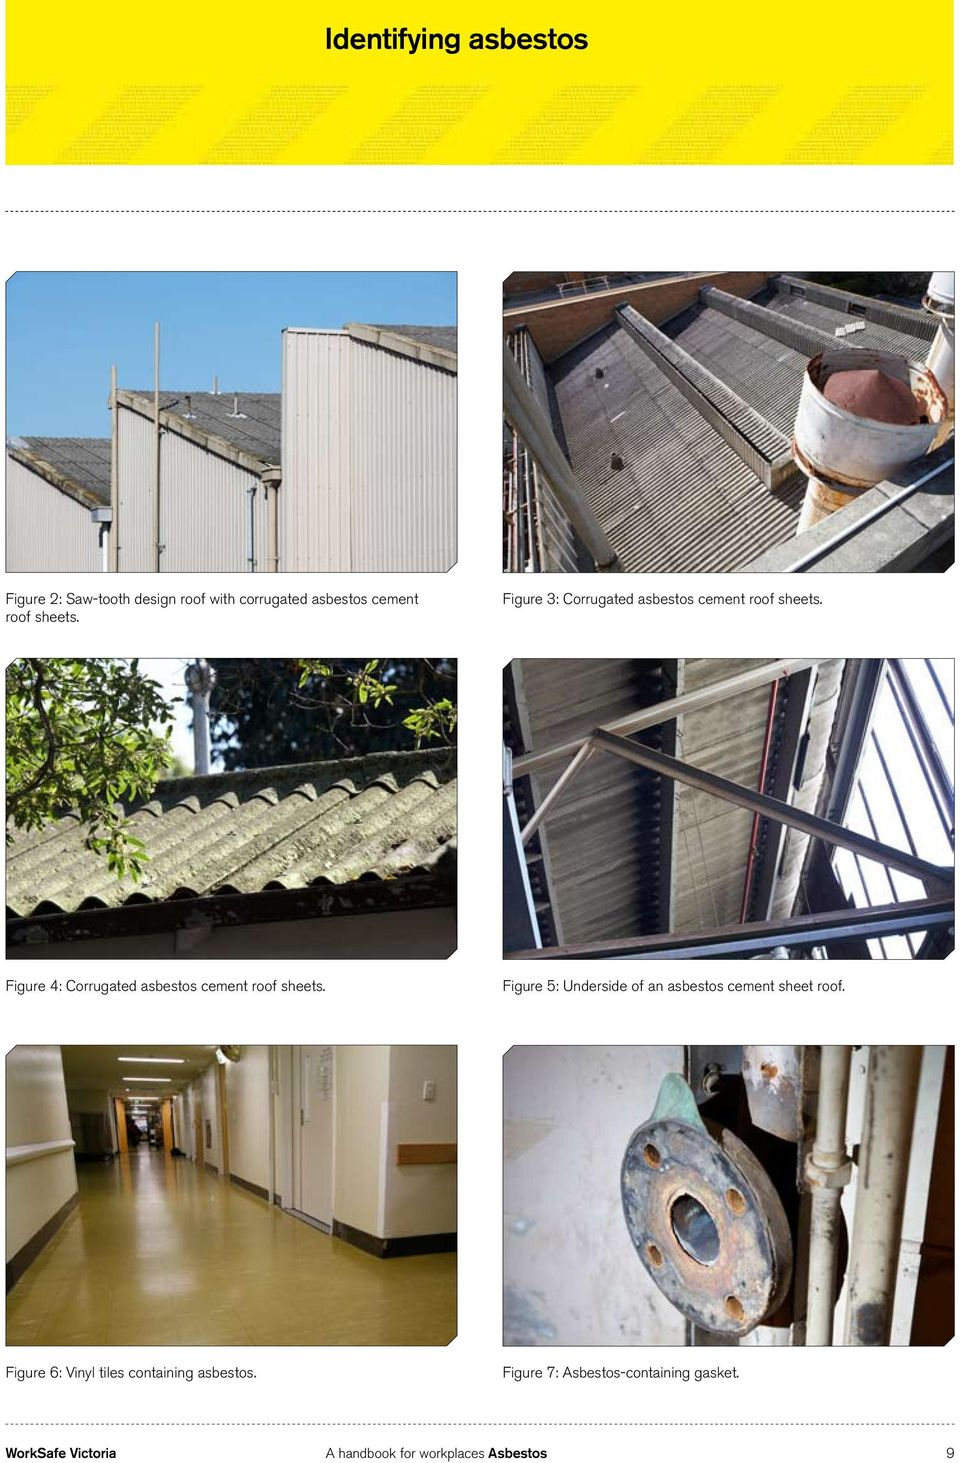 Figure 4: Corrugated asbestos cement roof sheets.